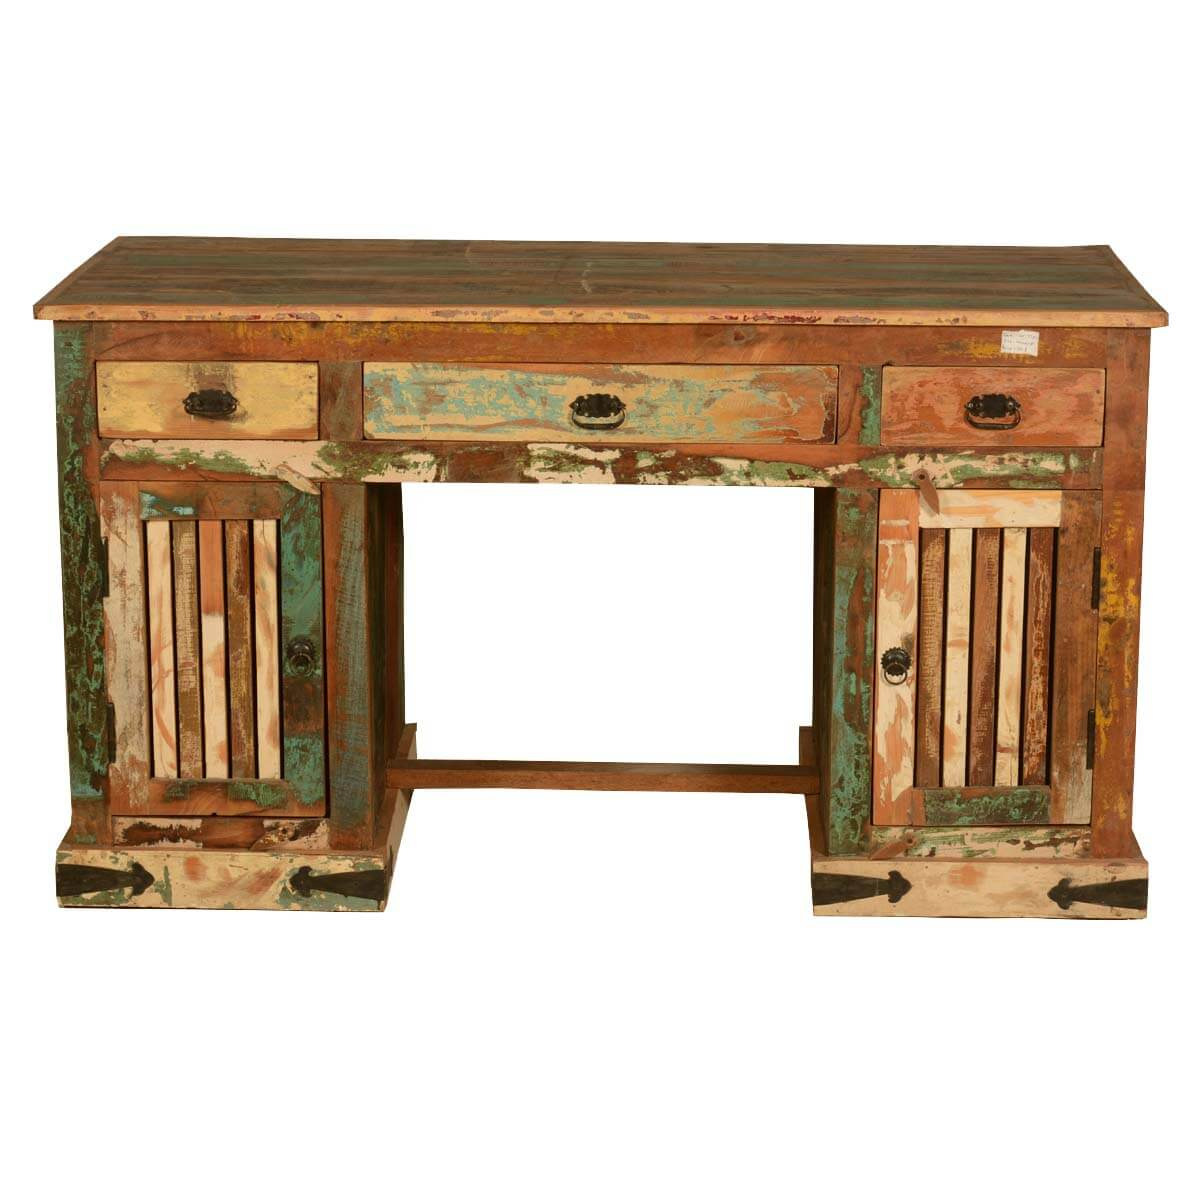 Reclaimed Wood Rustic Home Office: Gothic Rustic Double Pedestal Reclaimed Wood Office Desk